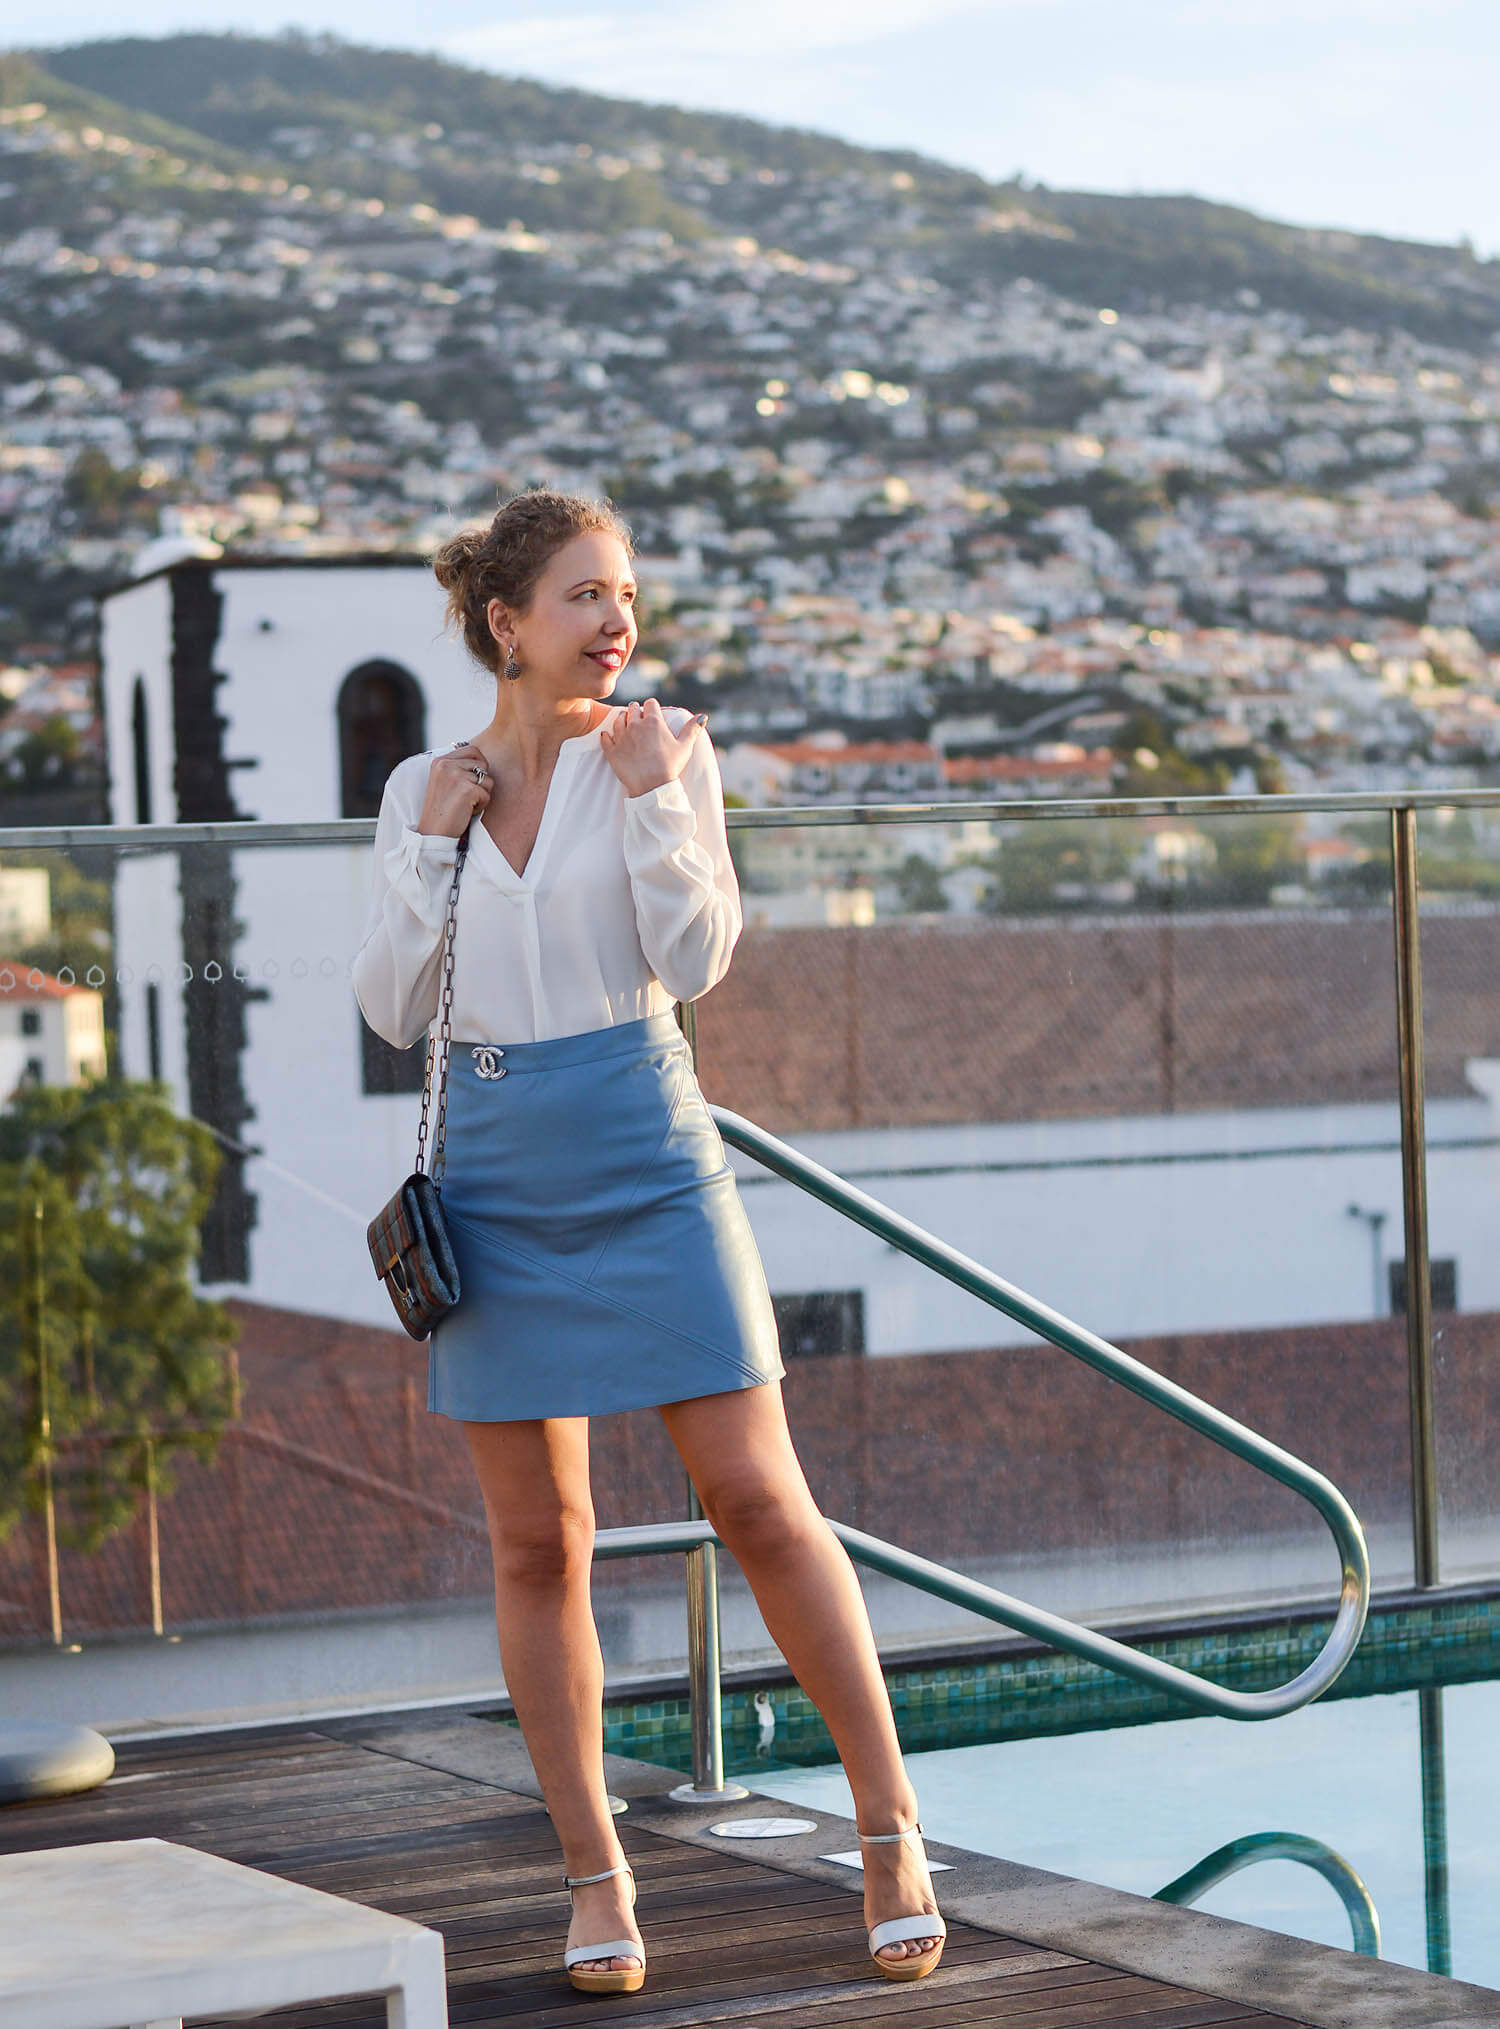 Kationette-fashionblogger-Outfit-White-Blouse-and-Baby-Blue-Leather-Skirt-for-Sunrise-on-a-Rooftop-in-Funchal-Madeira